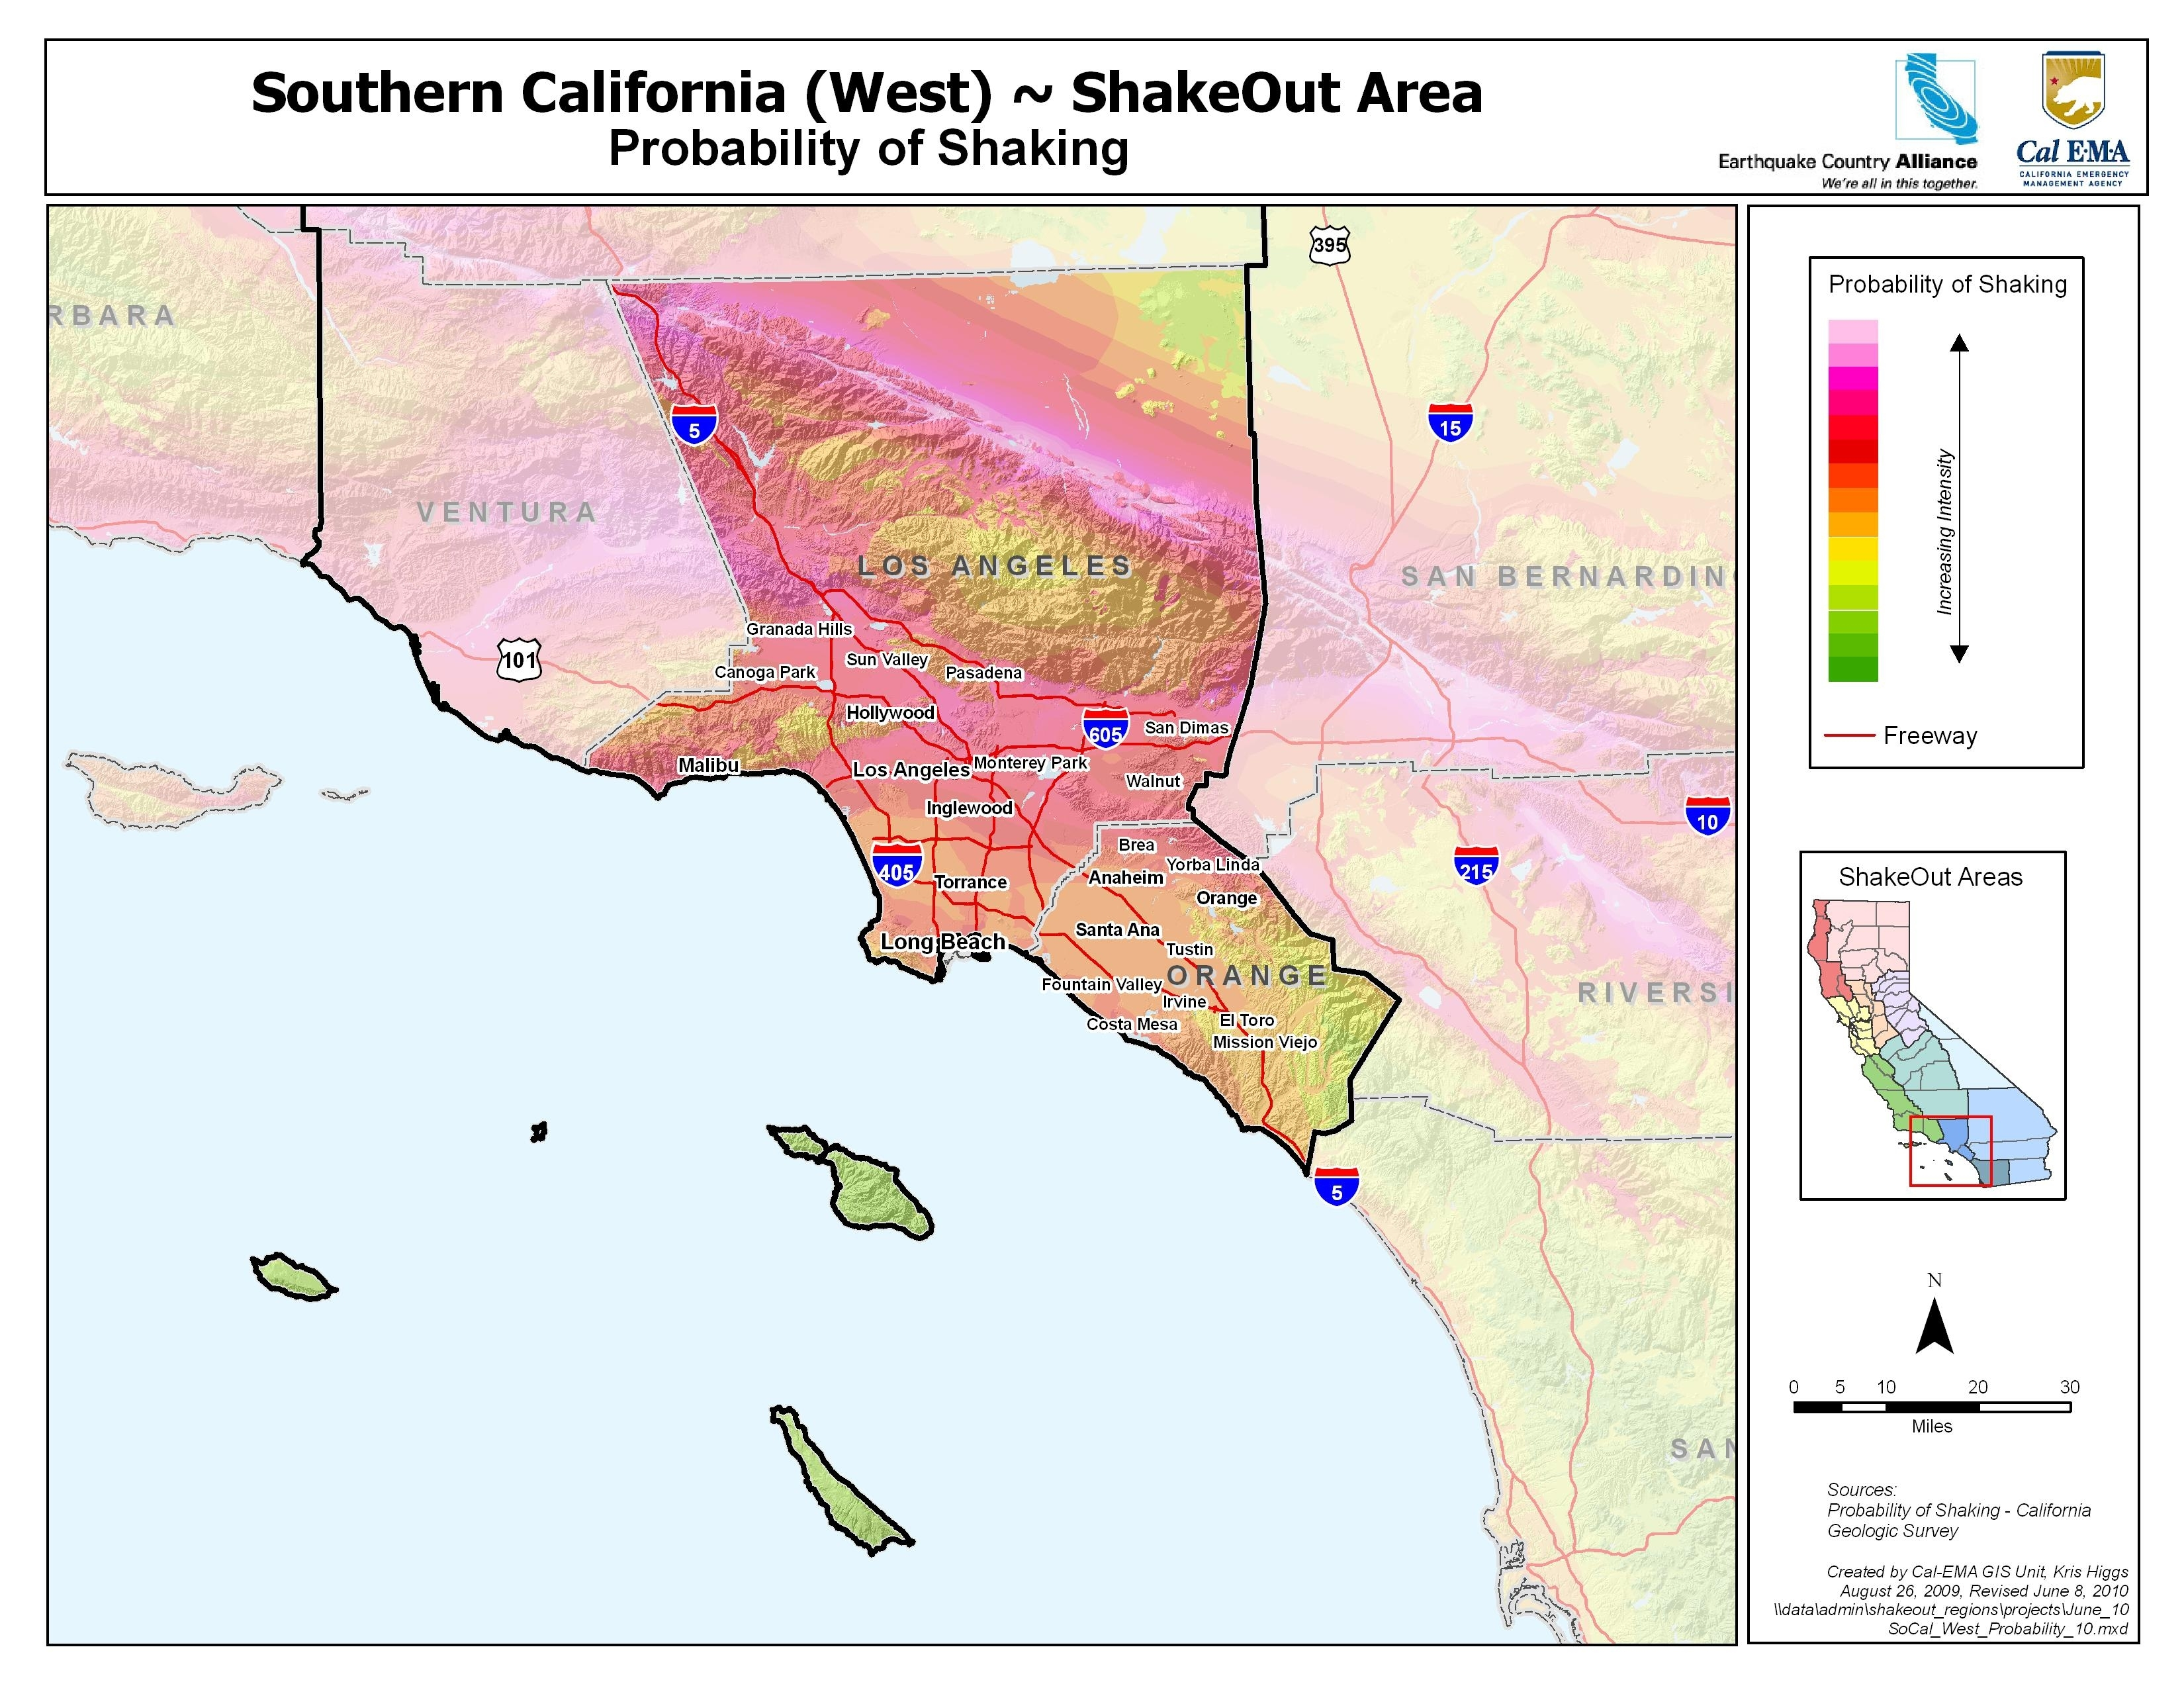 Earthquake Country Alliance: Welcome To Earthquake Country! inside California Coastal Zone Los Angeles County